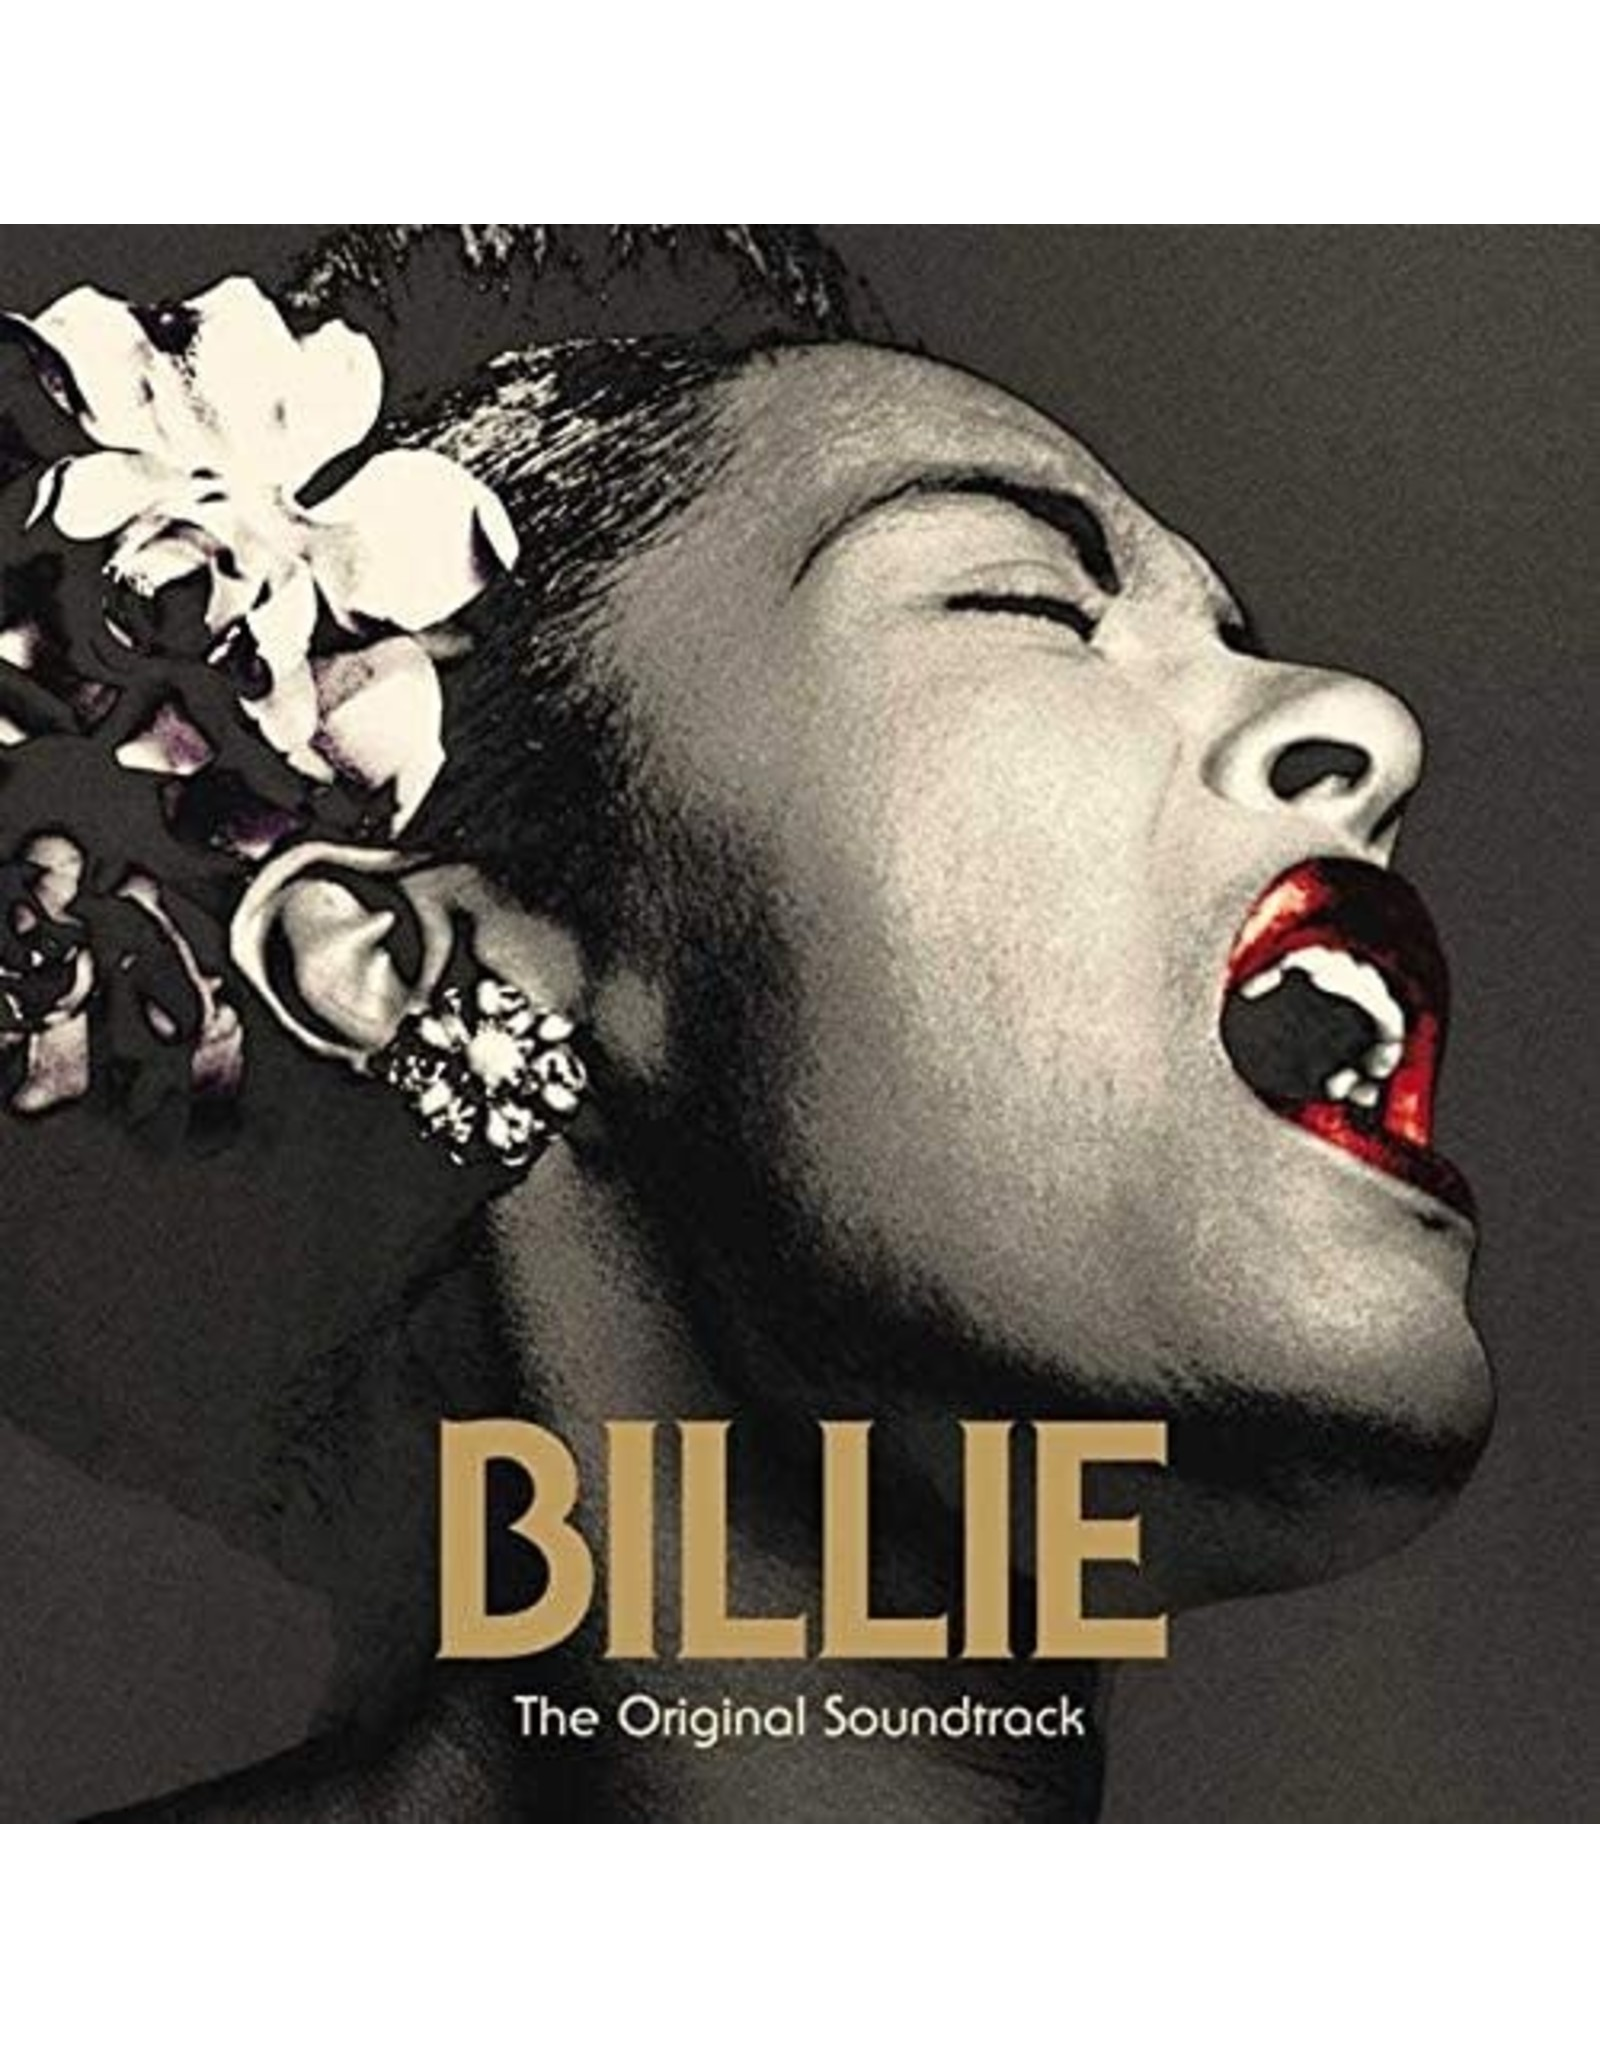 Billie Holiday - Billie (The Original Soundtrack)